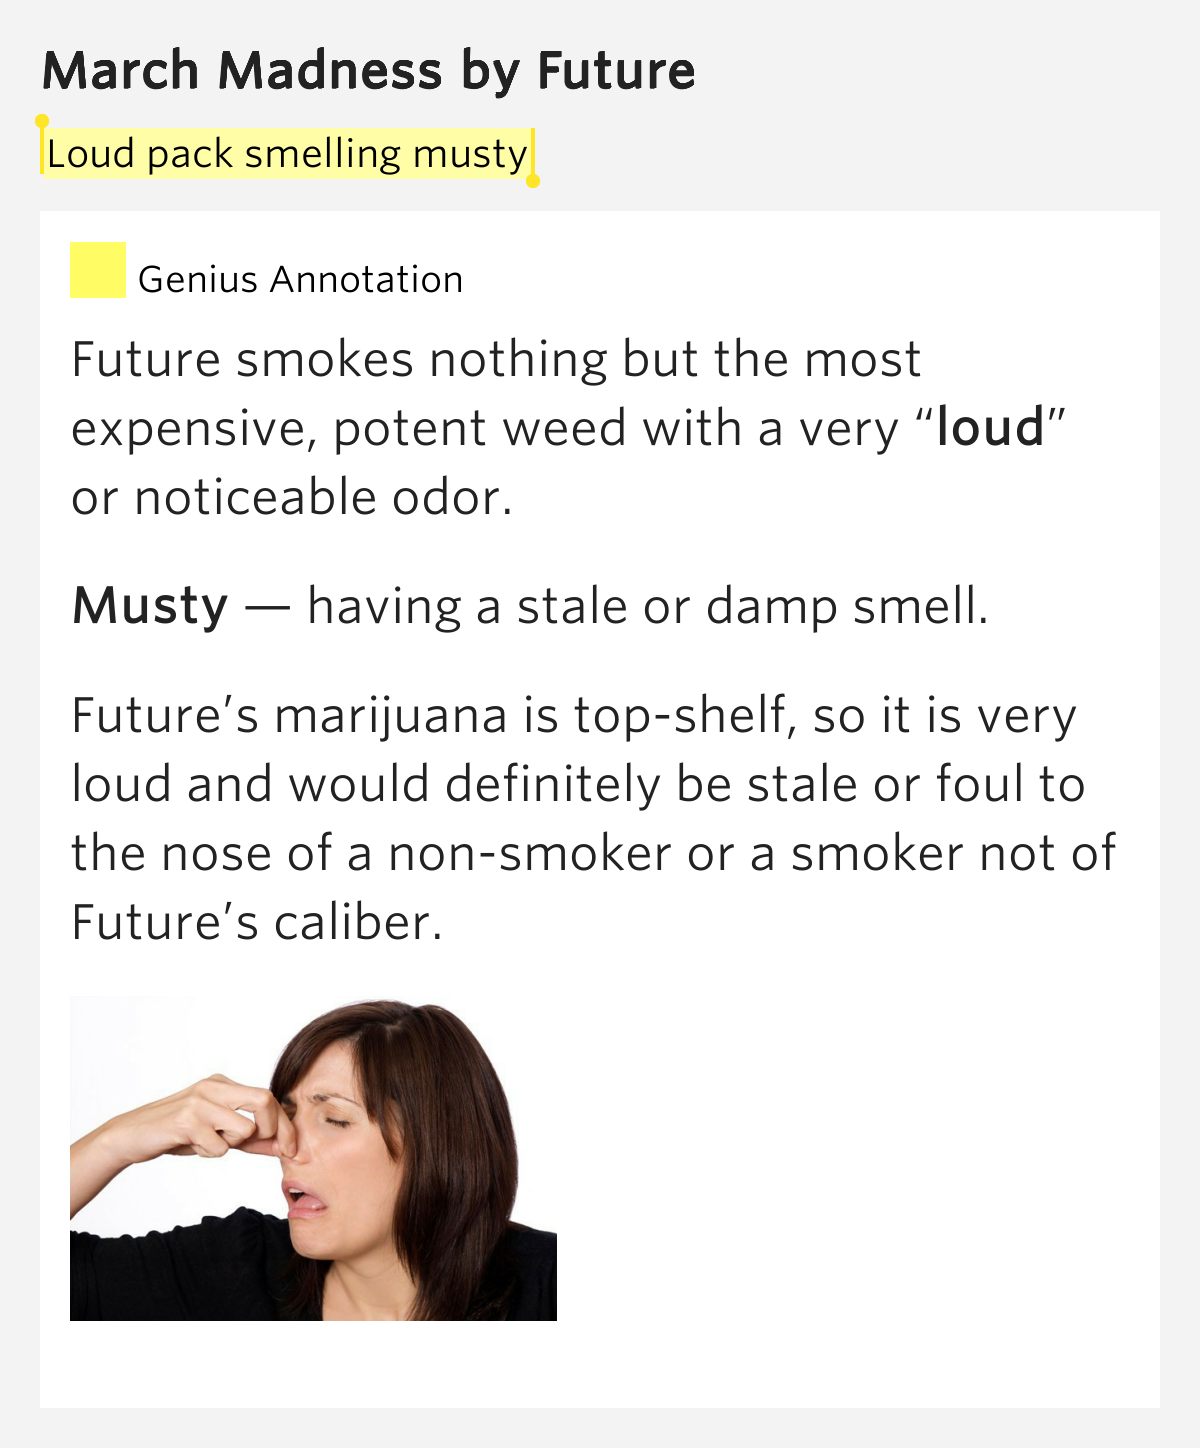 Loud pack smelling musty march madness by future for Musty odor definition